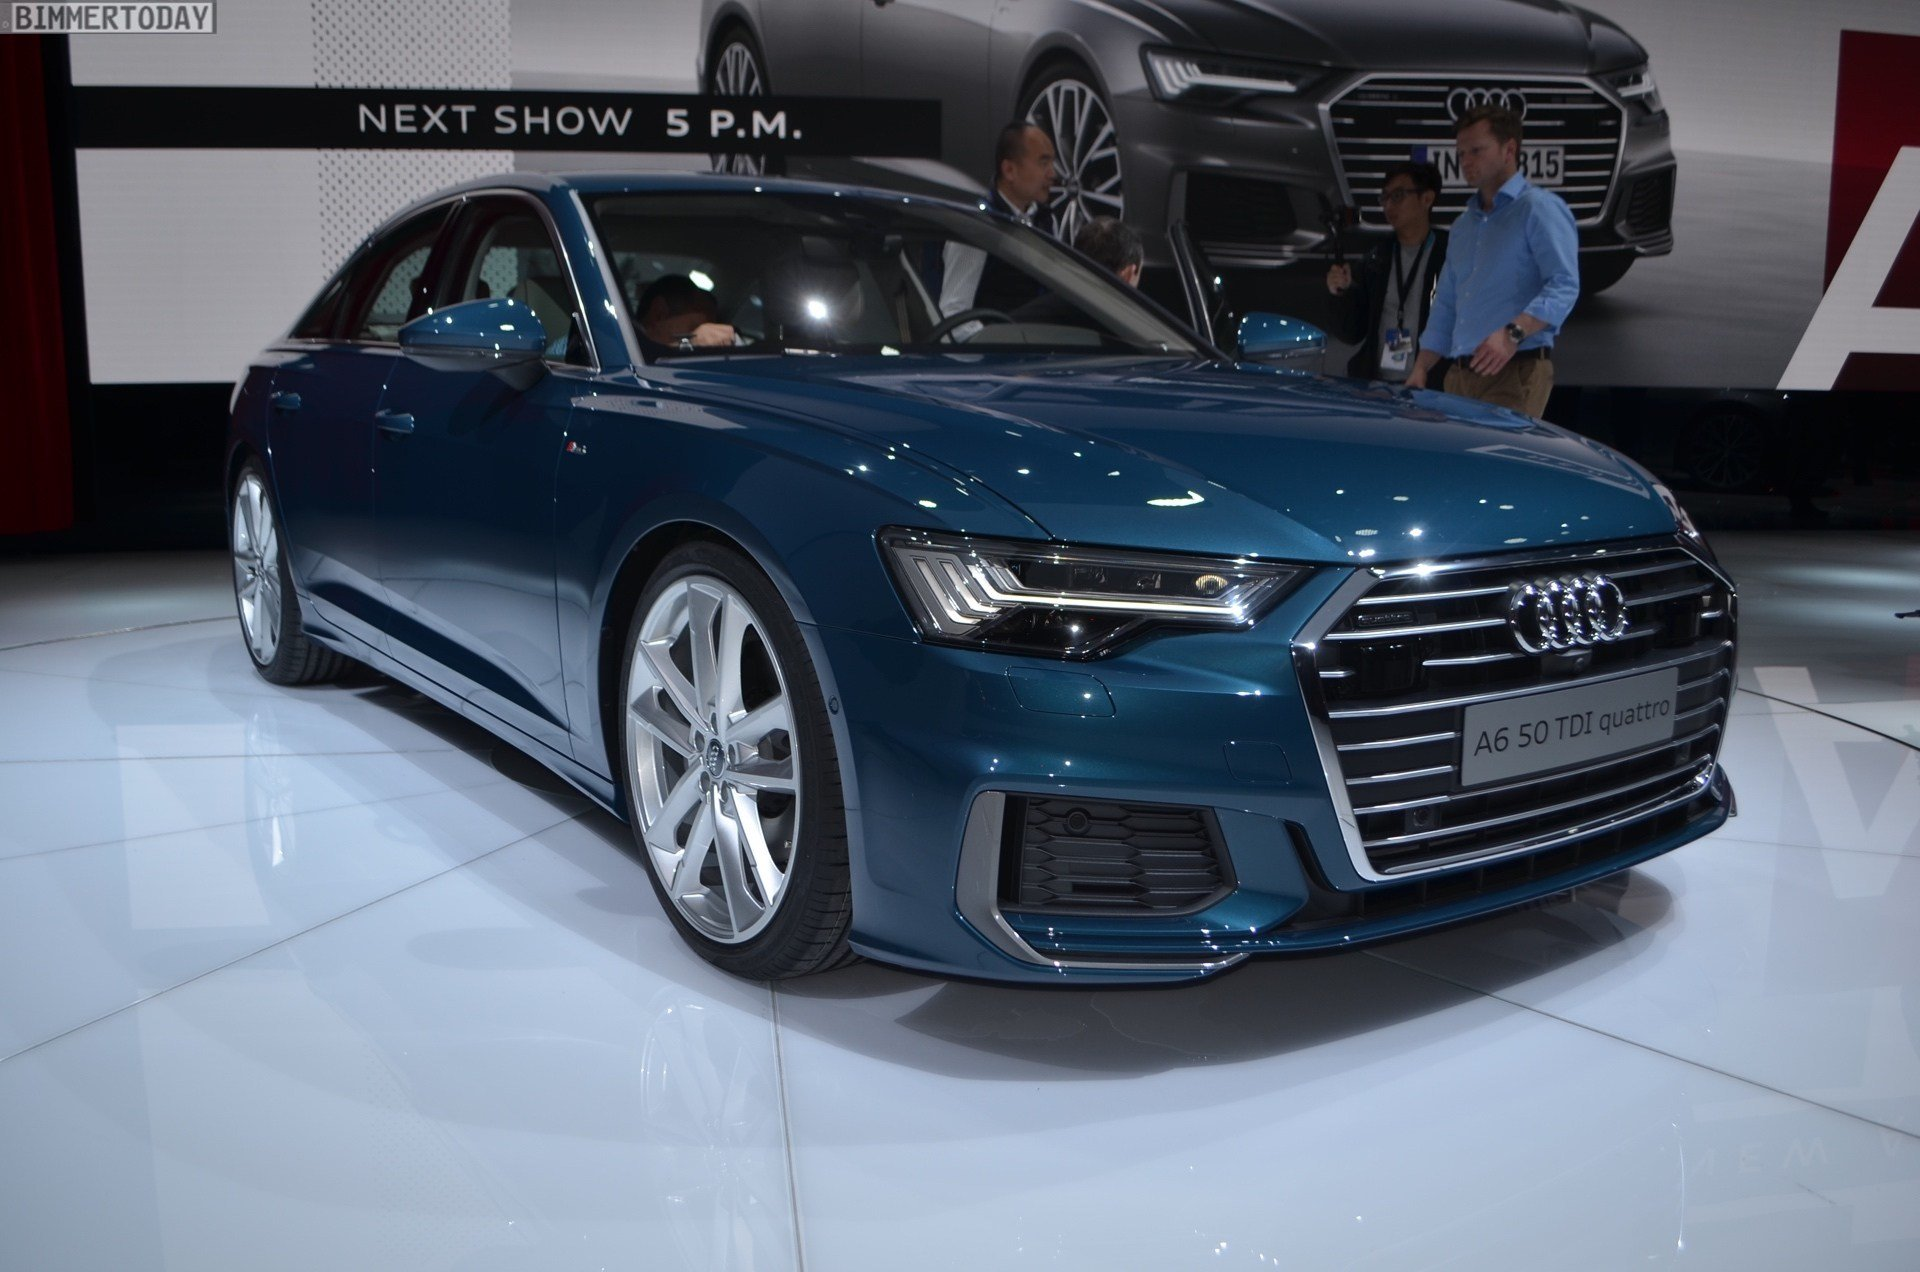 Latest 2018 Geneva Motor Show Live Photos Of The New Audi A6 Free Download